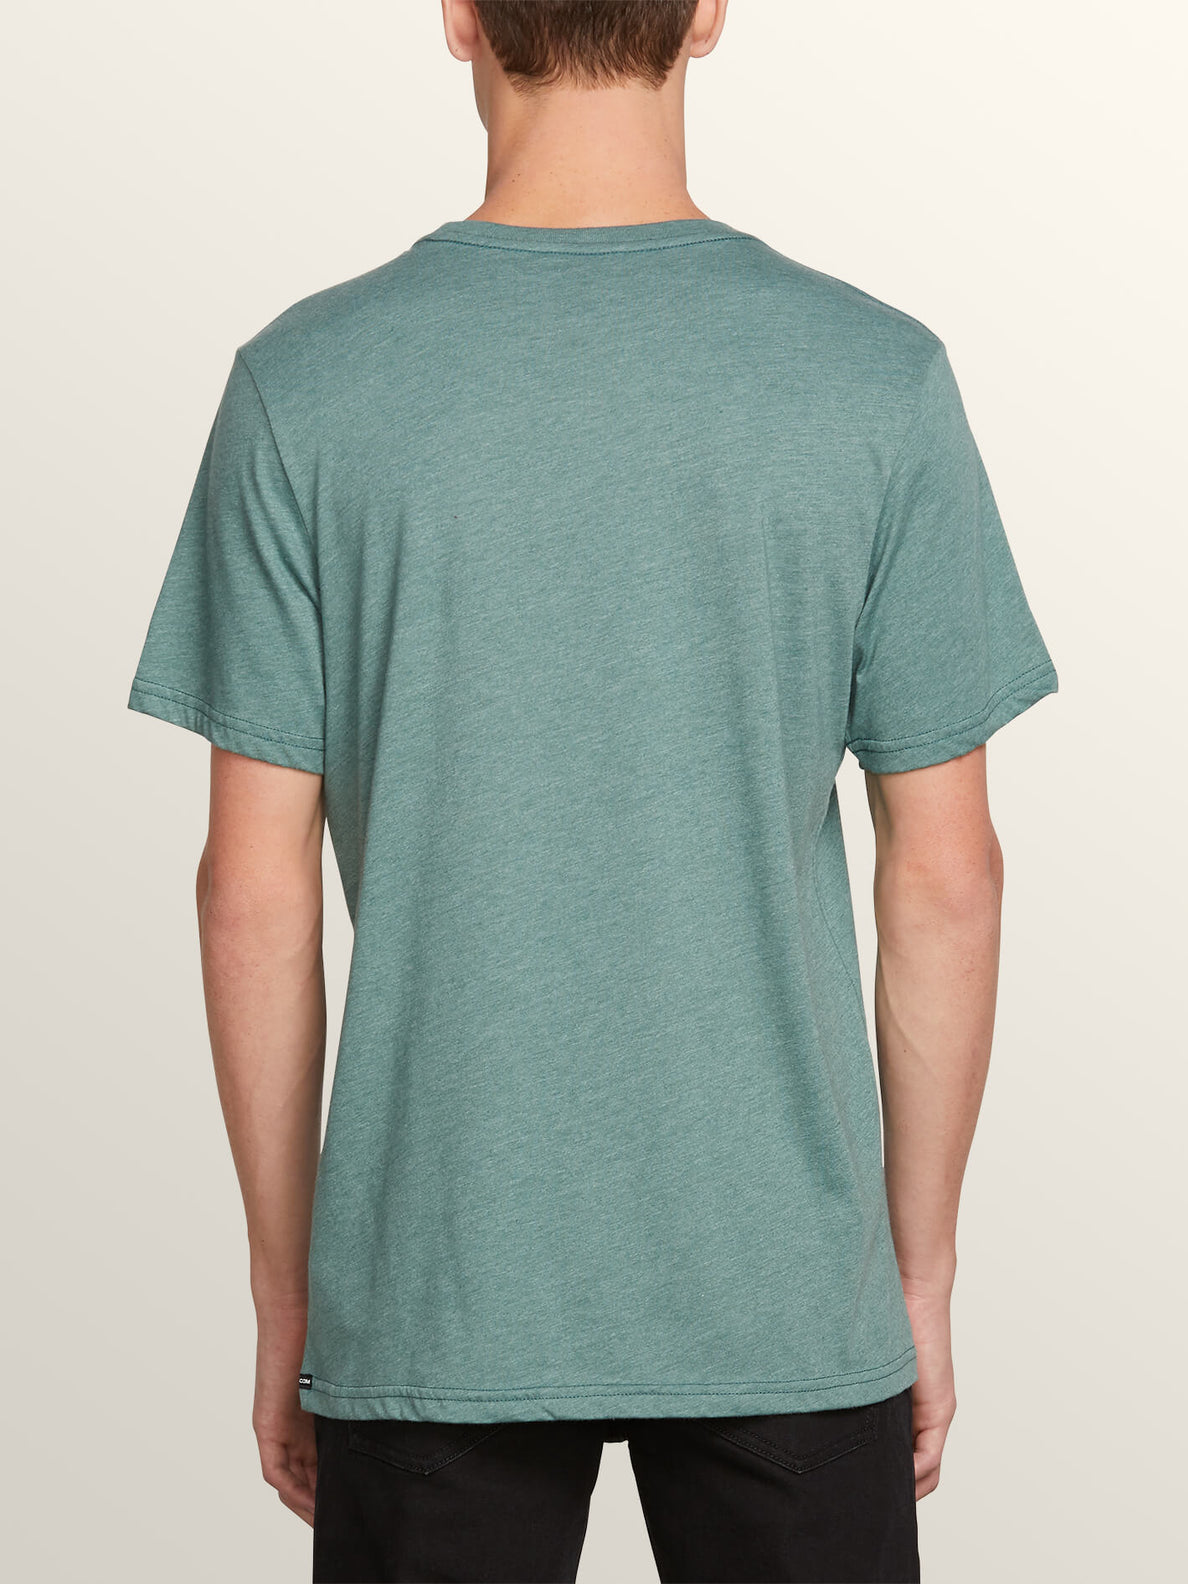 Path To Freedom Short Sleeve Tee In Pine, Back View